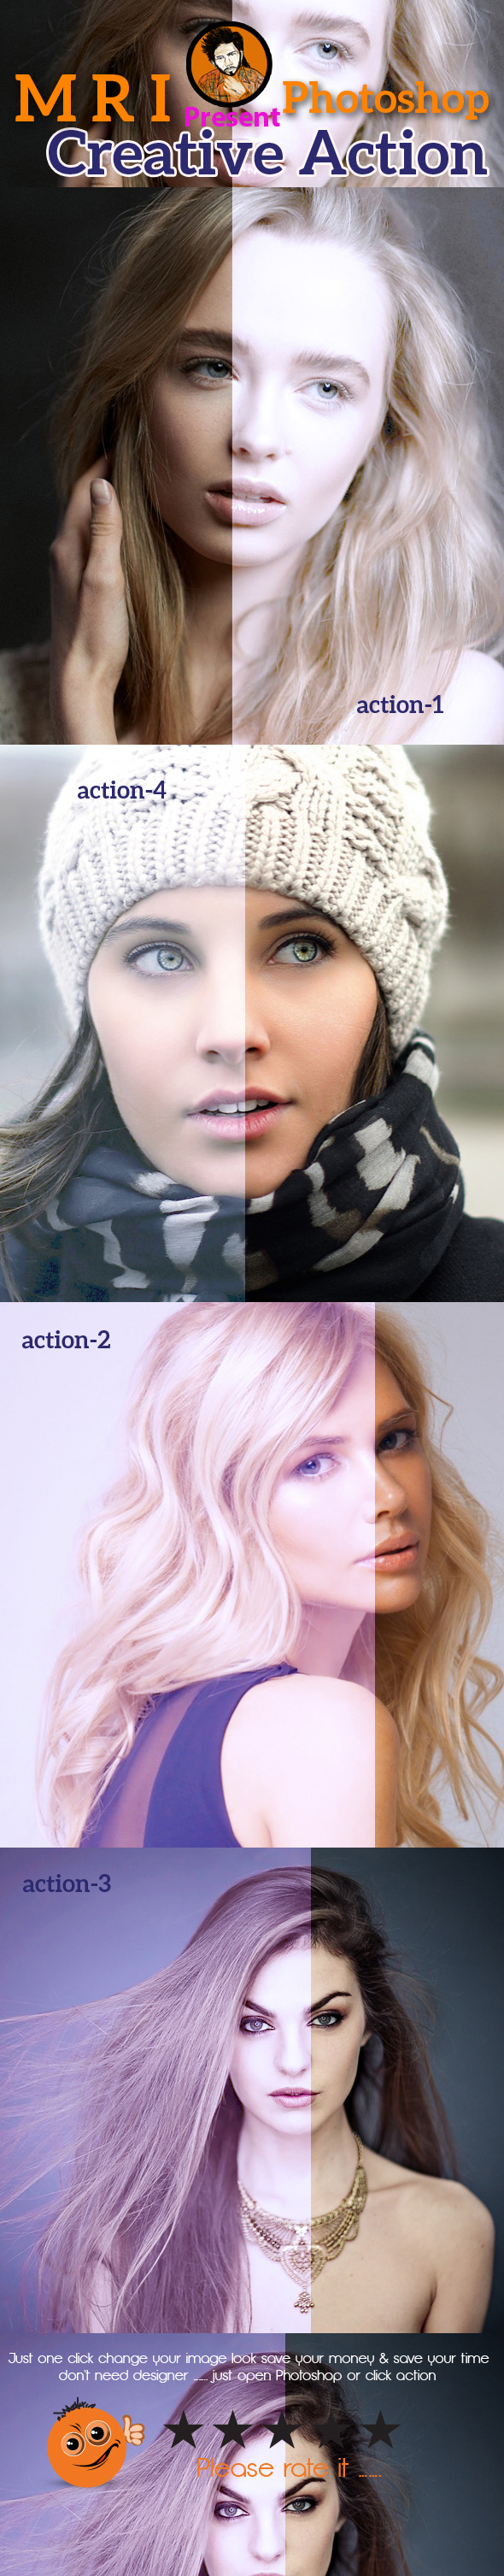 Glow Light Action - Actions Photoshop